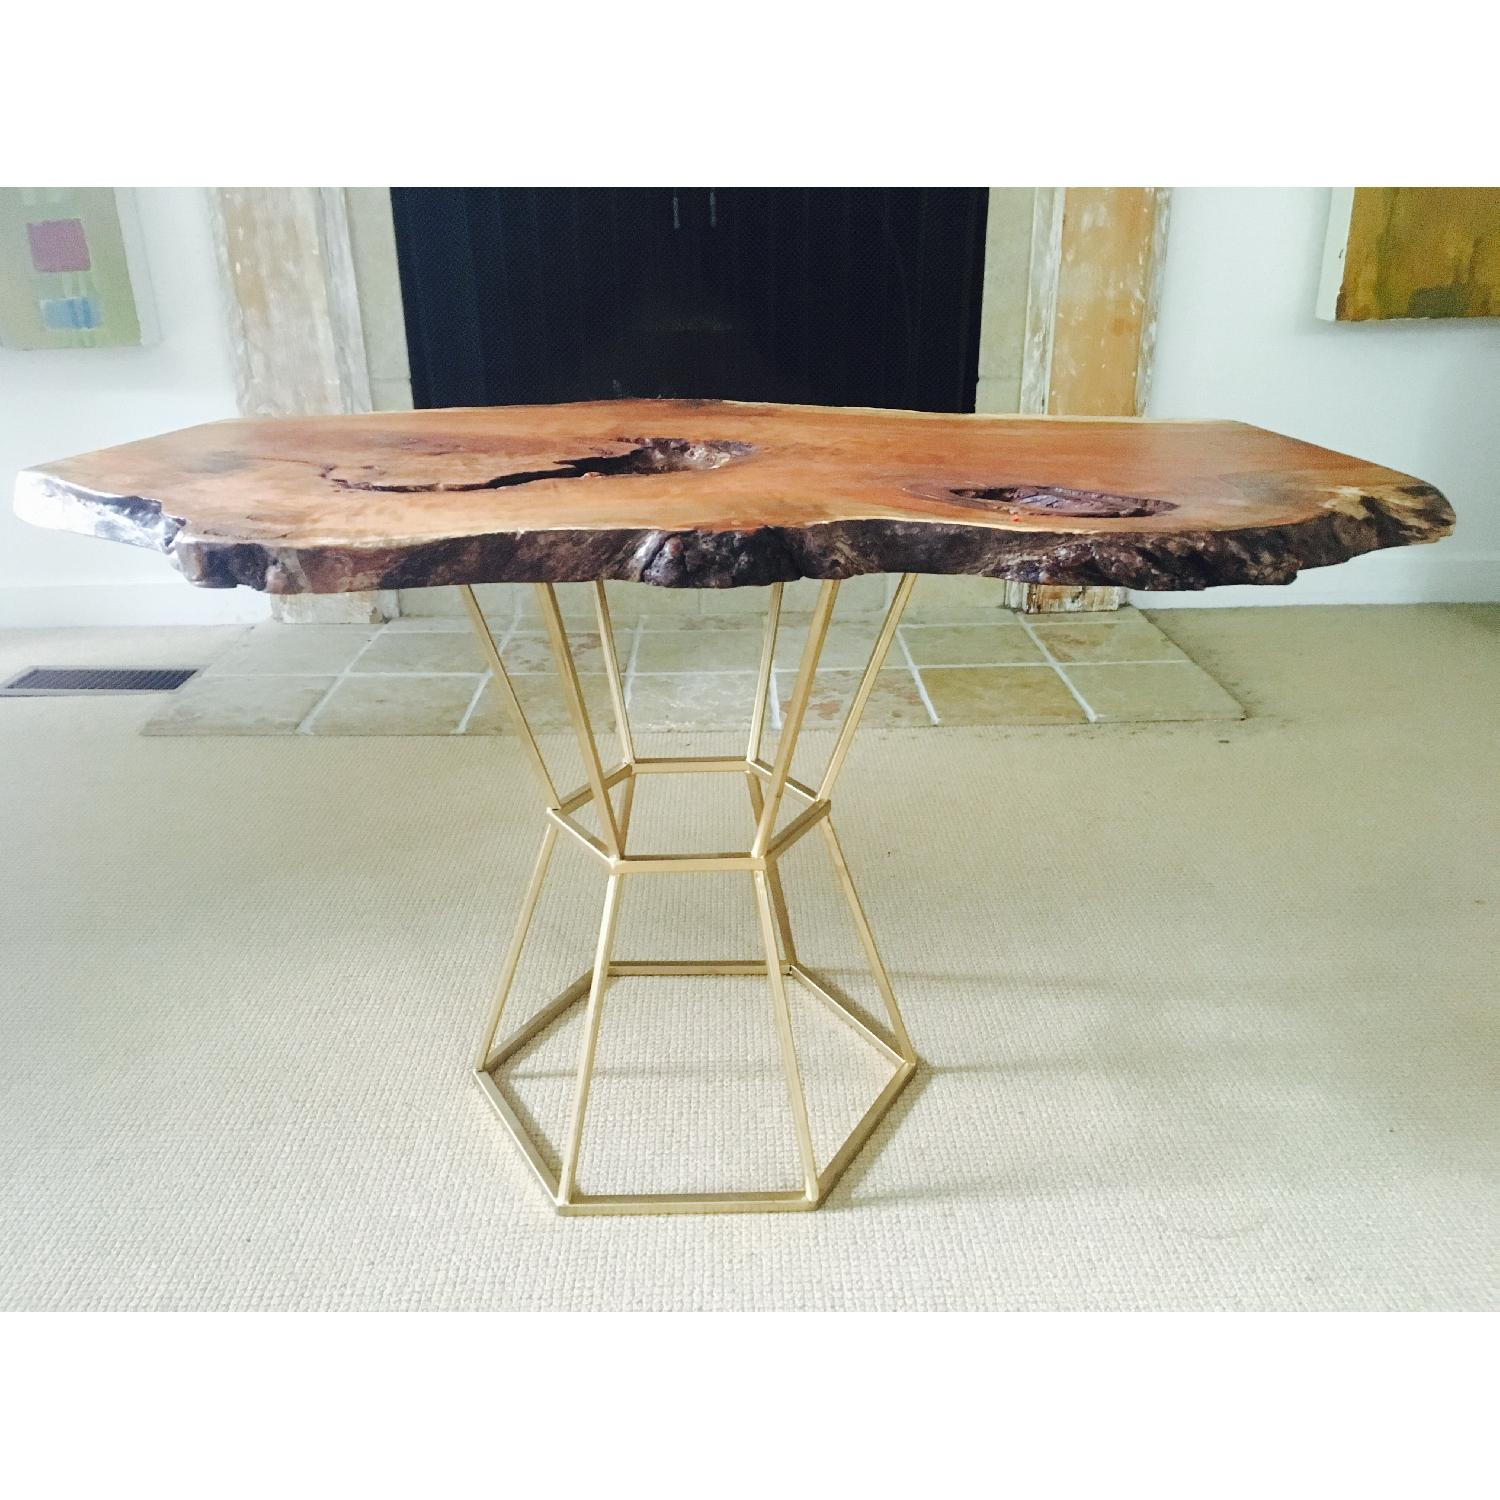 Live Edge Cherry Burl Coffee Table - image-5